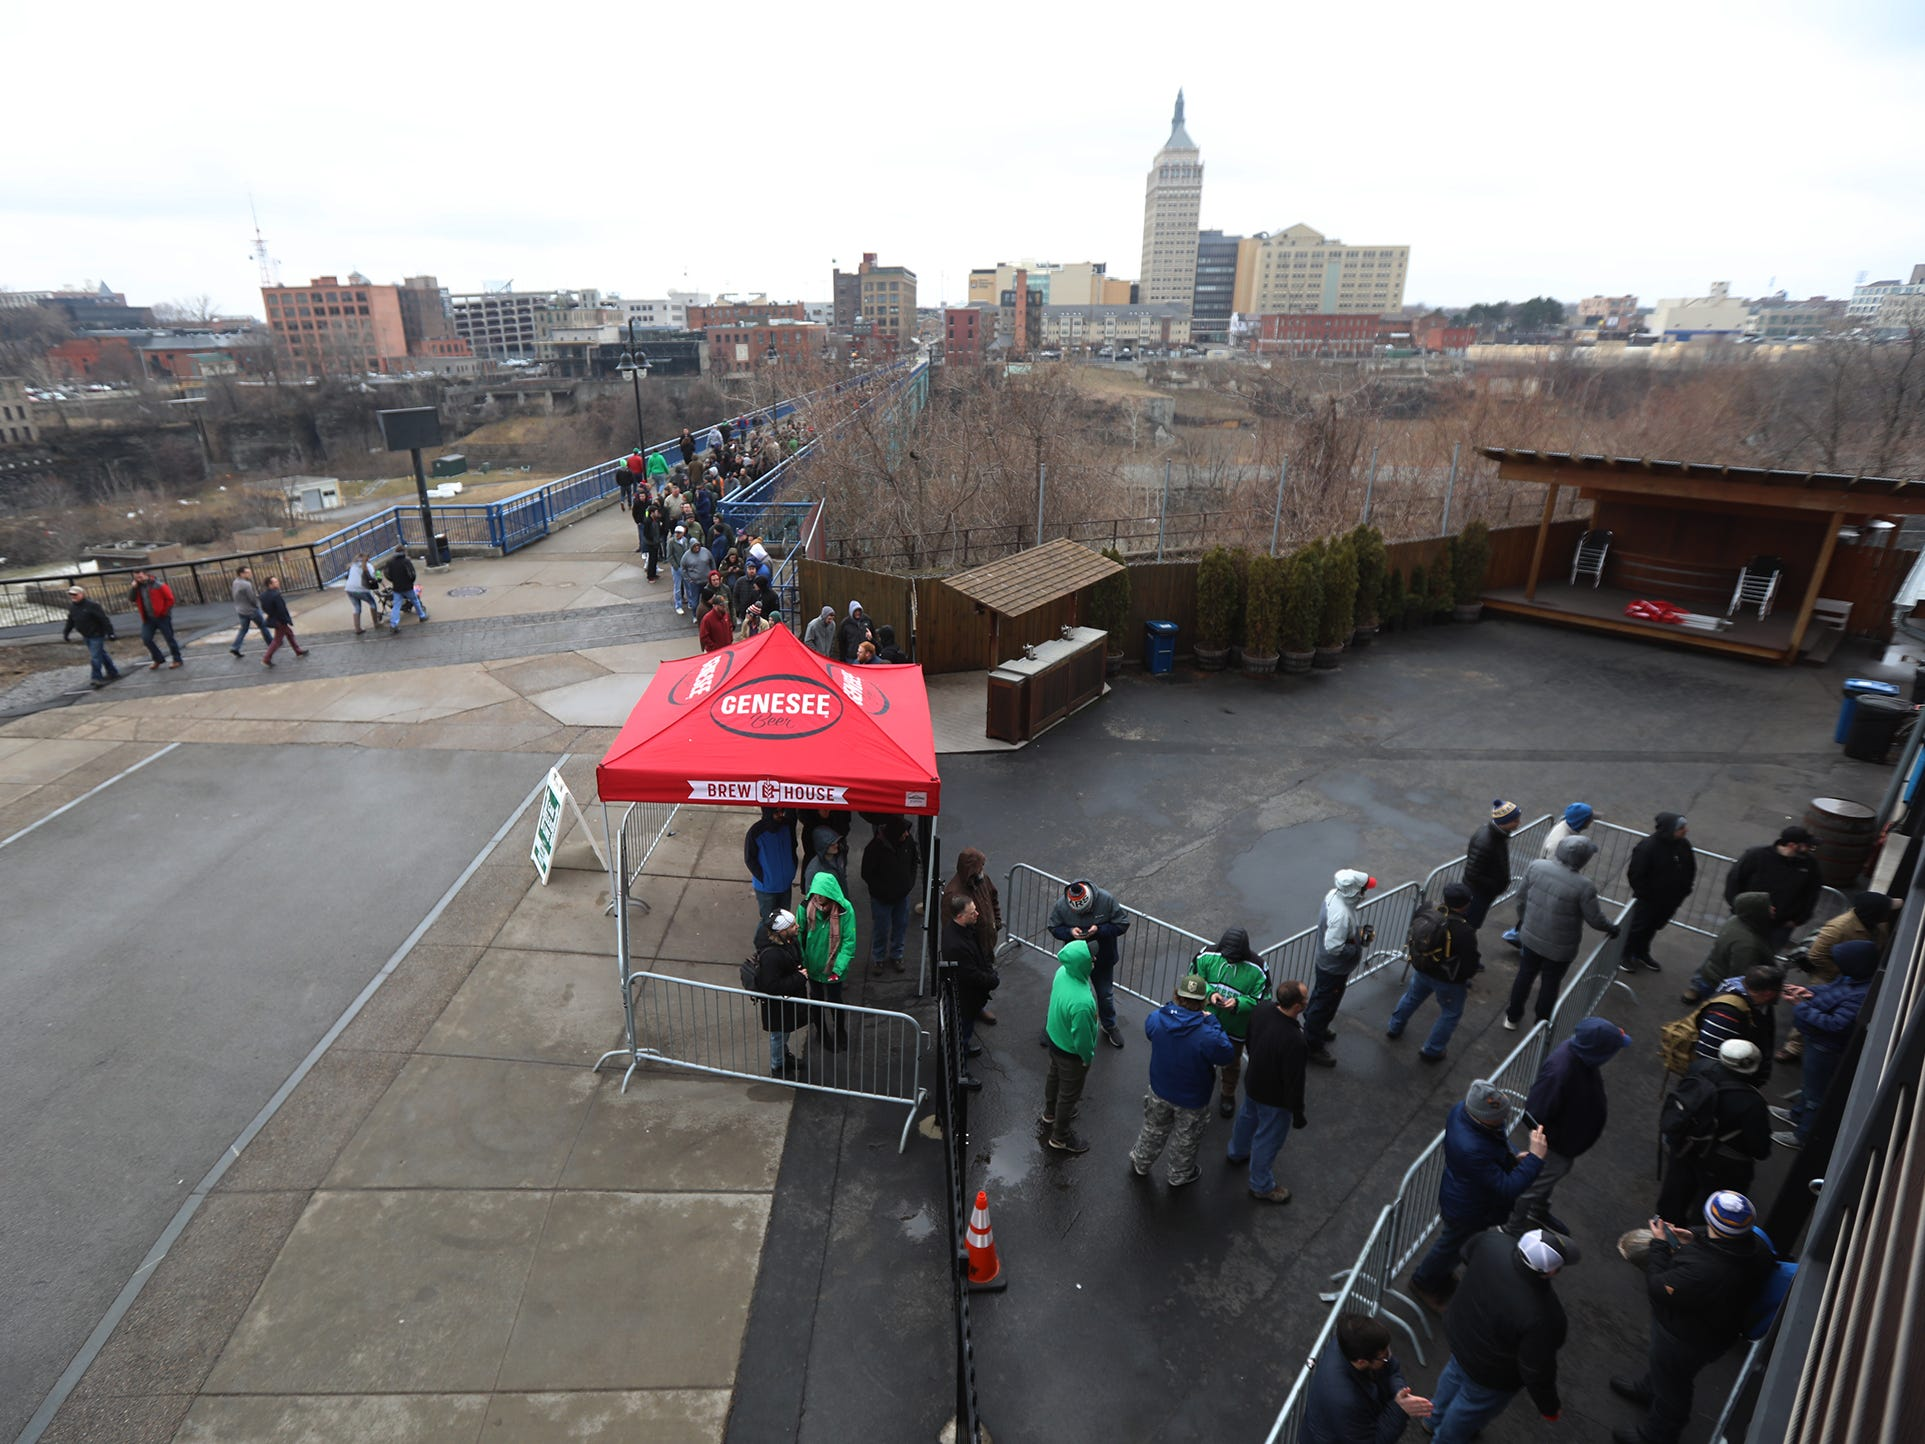 People had to park several blocks away to get in line to buy Genesee Dream Ale.  The parking lot was completely full along with streets immediately near the Genesee Brew House.